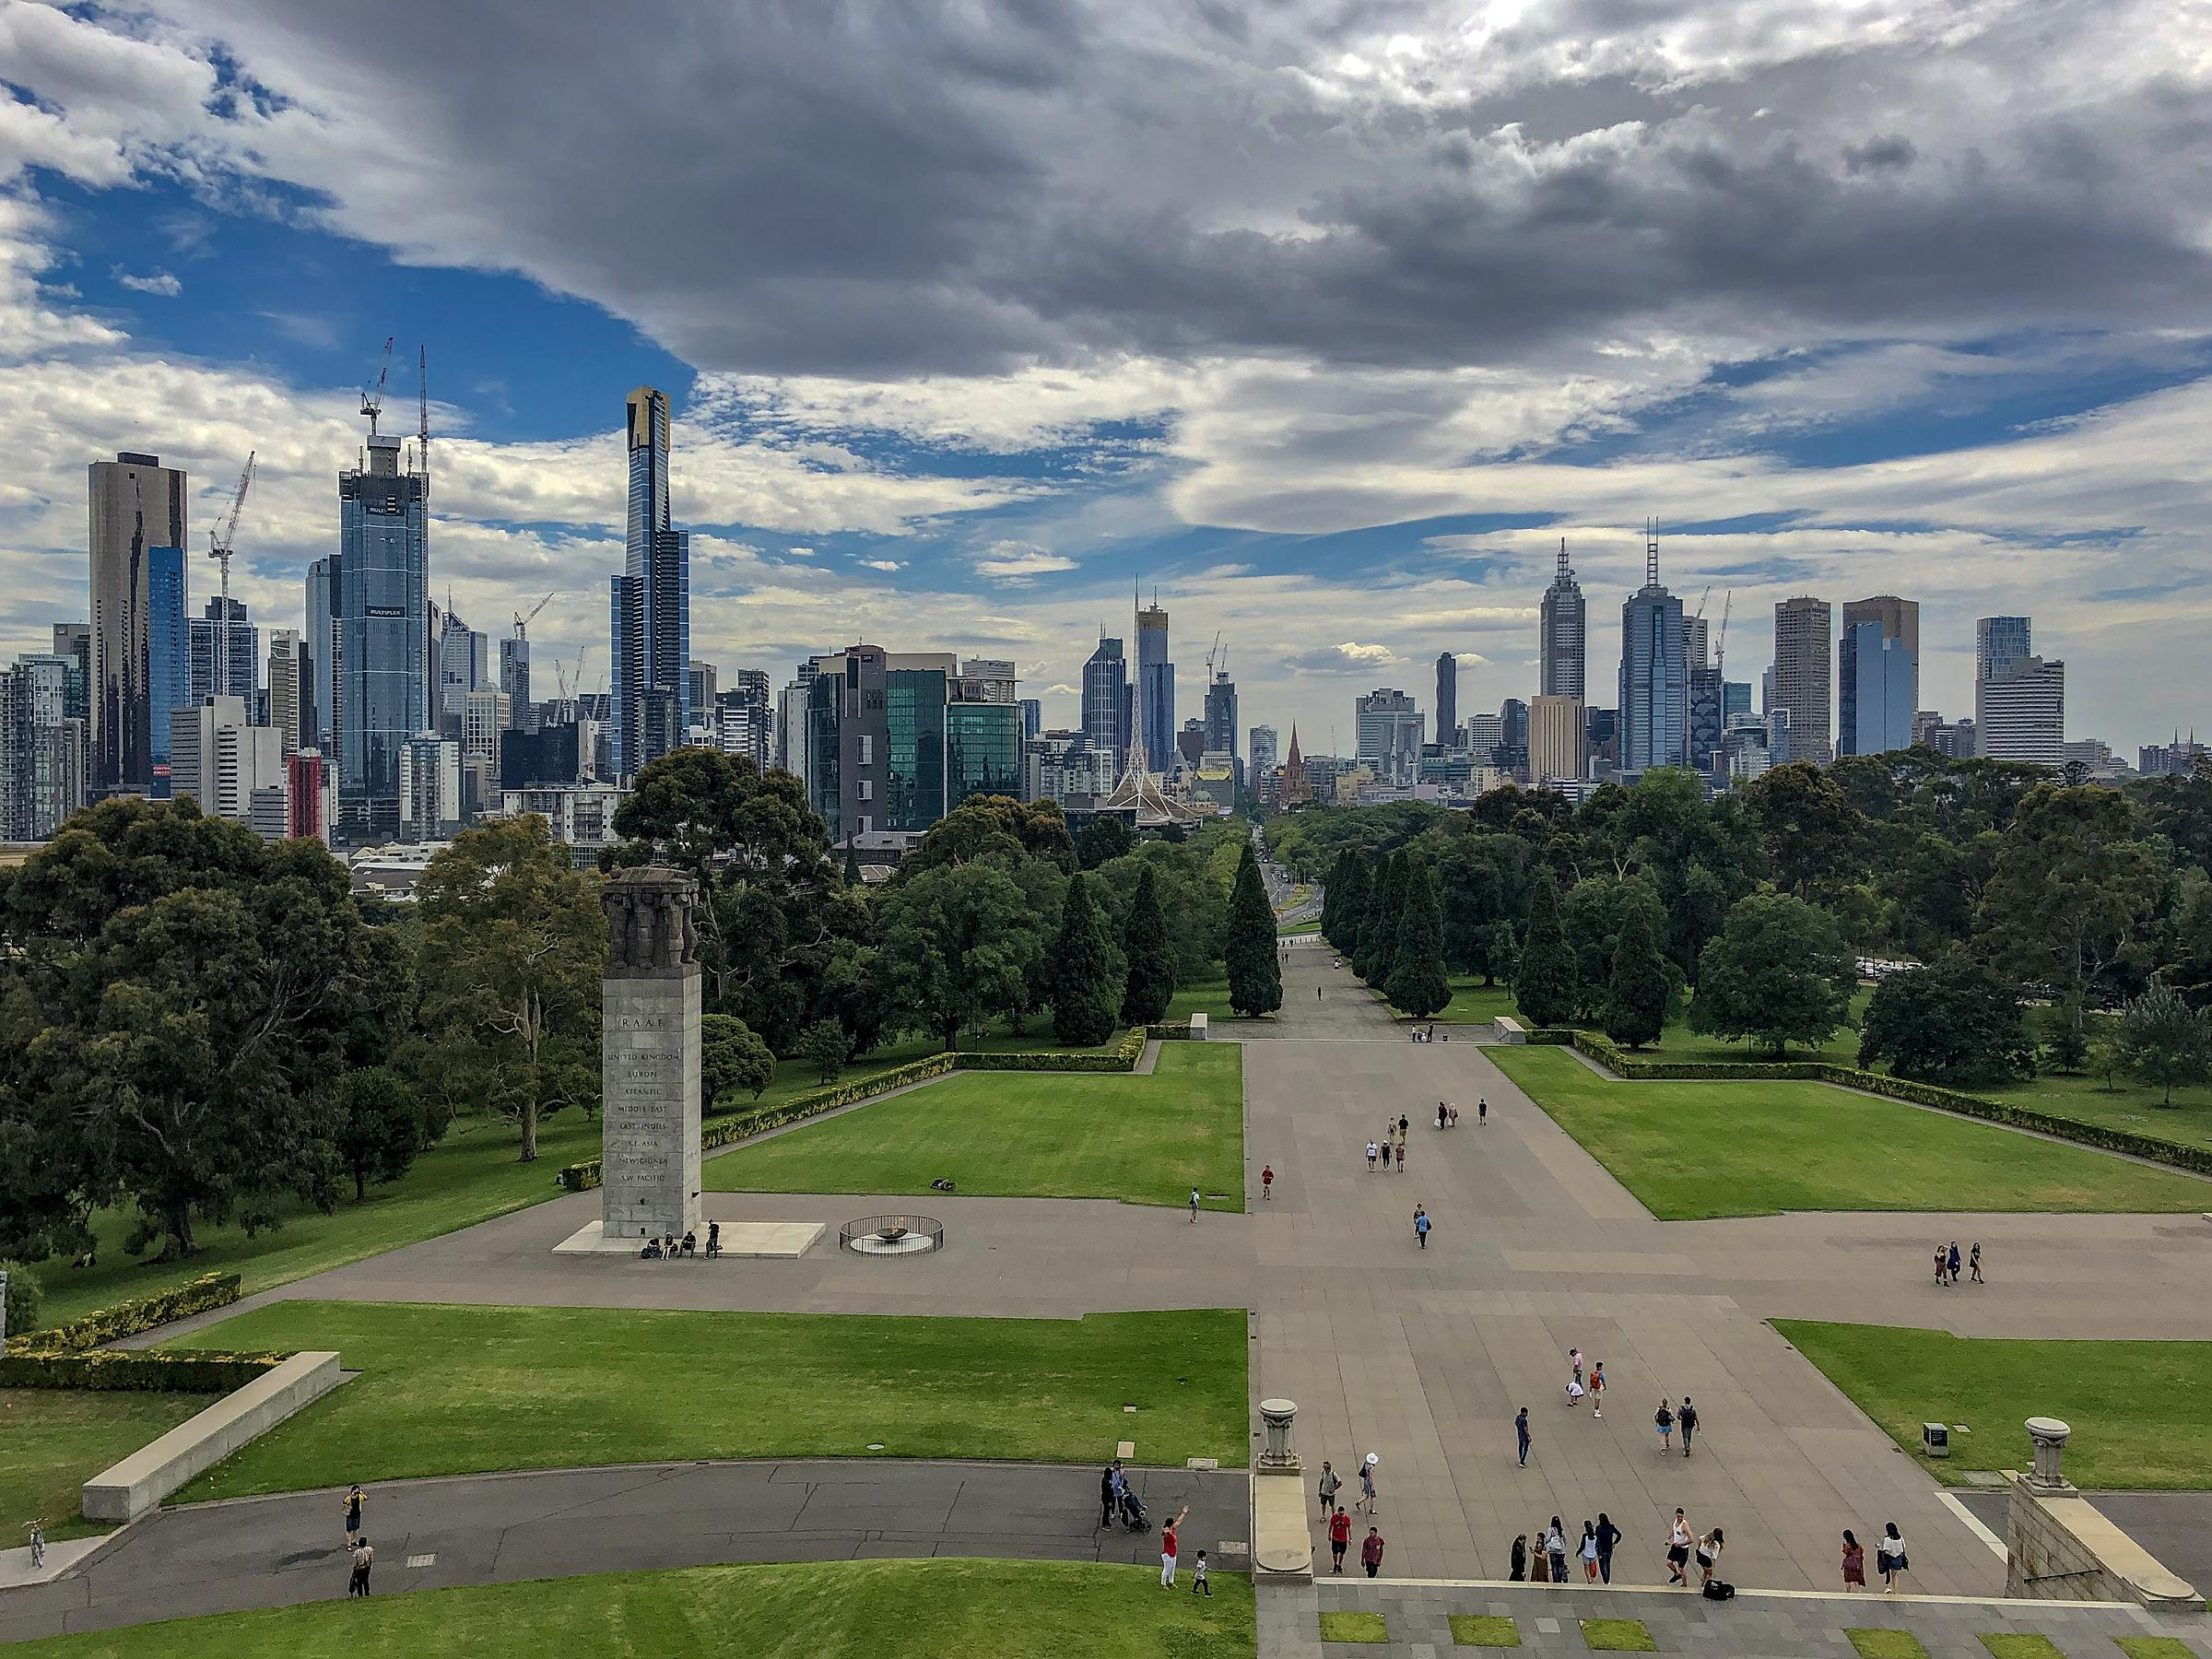 From a high vantage point at the Shrine of Remembrance, looking out over a courtyard with the city of Melbourne's skyline filling the background.